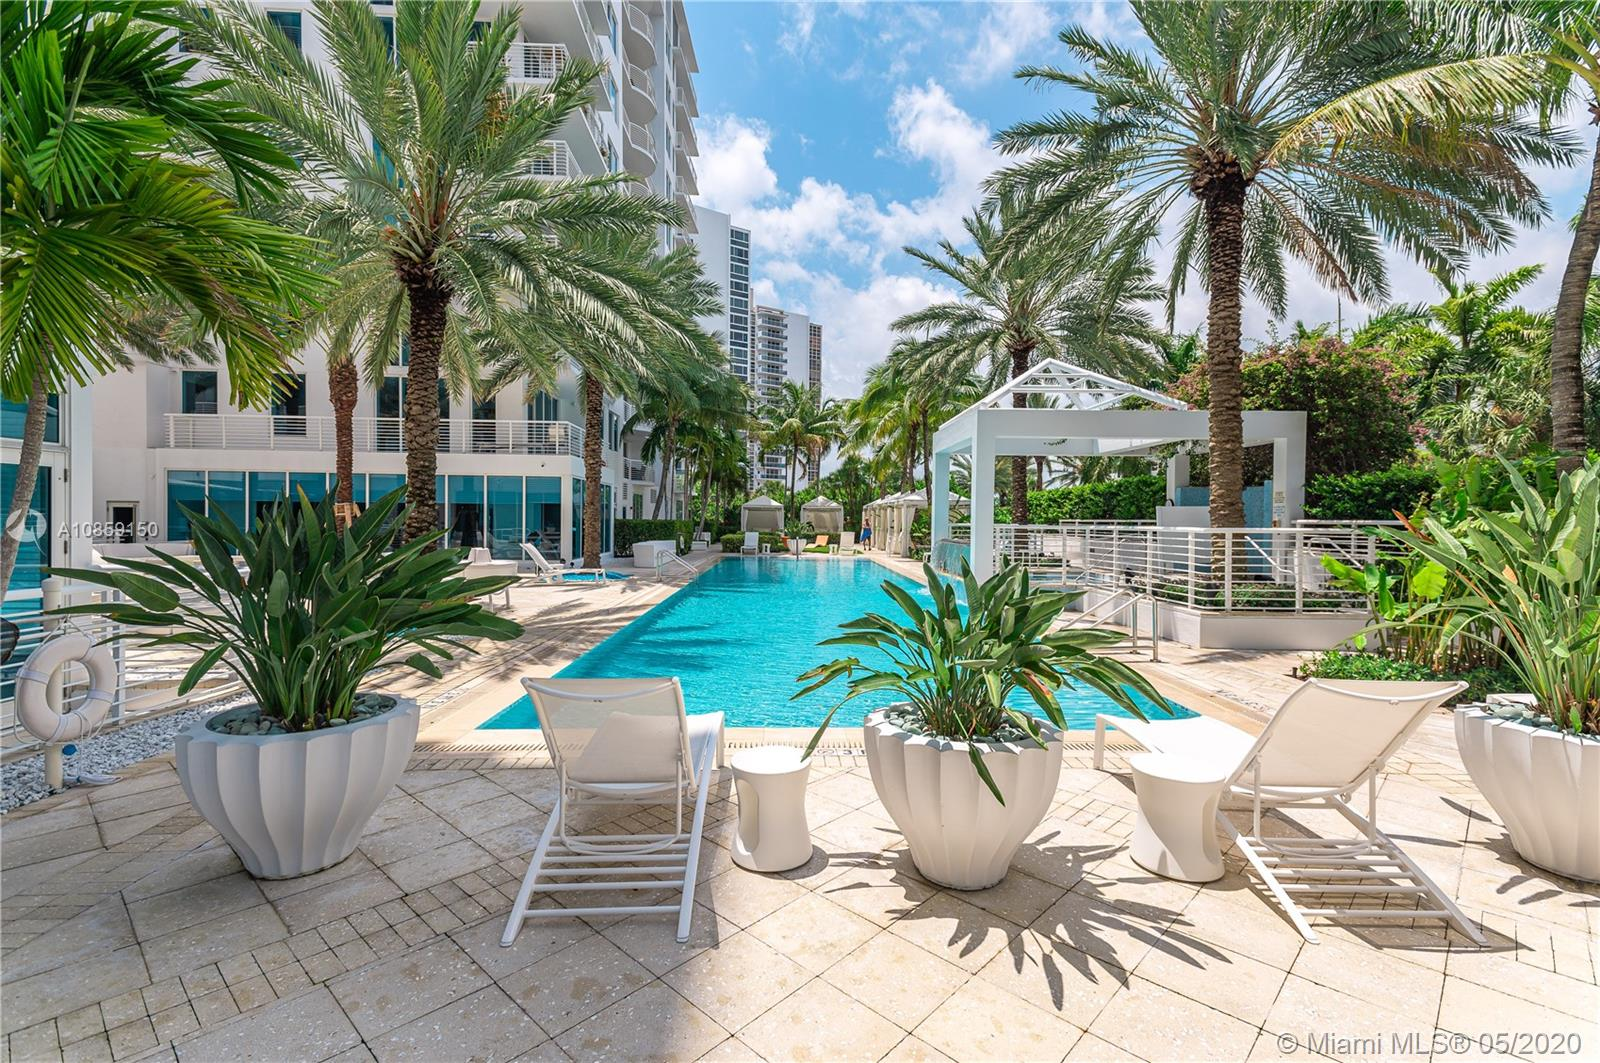 Priced to Sell at the coveted Sapphire. A 5 min walk to Ft Lauderdale Beach. Enjoy contemporary elegance & 5-Star Luxury Resort Living in this gorgeous, freshly painted 2BR, 2FBA + Den unit. $40K in upgrades, 24x24 porcelain floors & designer details thru out. Stunning oak wood floors grace lavish master suite w/custom walk-in closet & spa like en suite bath. Both light-filled spacious bedrooms have soaring floor to ceiling impact sliders that lead to long balcony. Open kitchen w/Smart SS appliances, granite counters. Chic lighting, LED spots w/dimmers. Motorized solar shades. 5-Star Amenities incl: 24 Hr Security, Resort Style Pool, Fitness Center, Spa, Business Ctr, Private Dog Park * Ownership incl membership to elite Club Harbor Beach at the Marriott Resort w/golf & tennis privileges